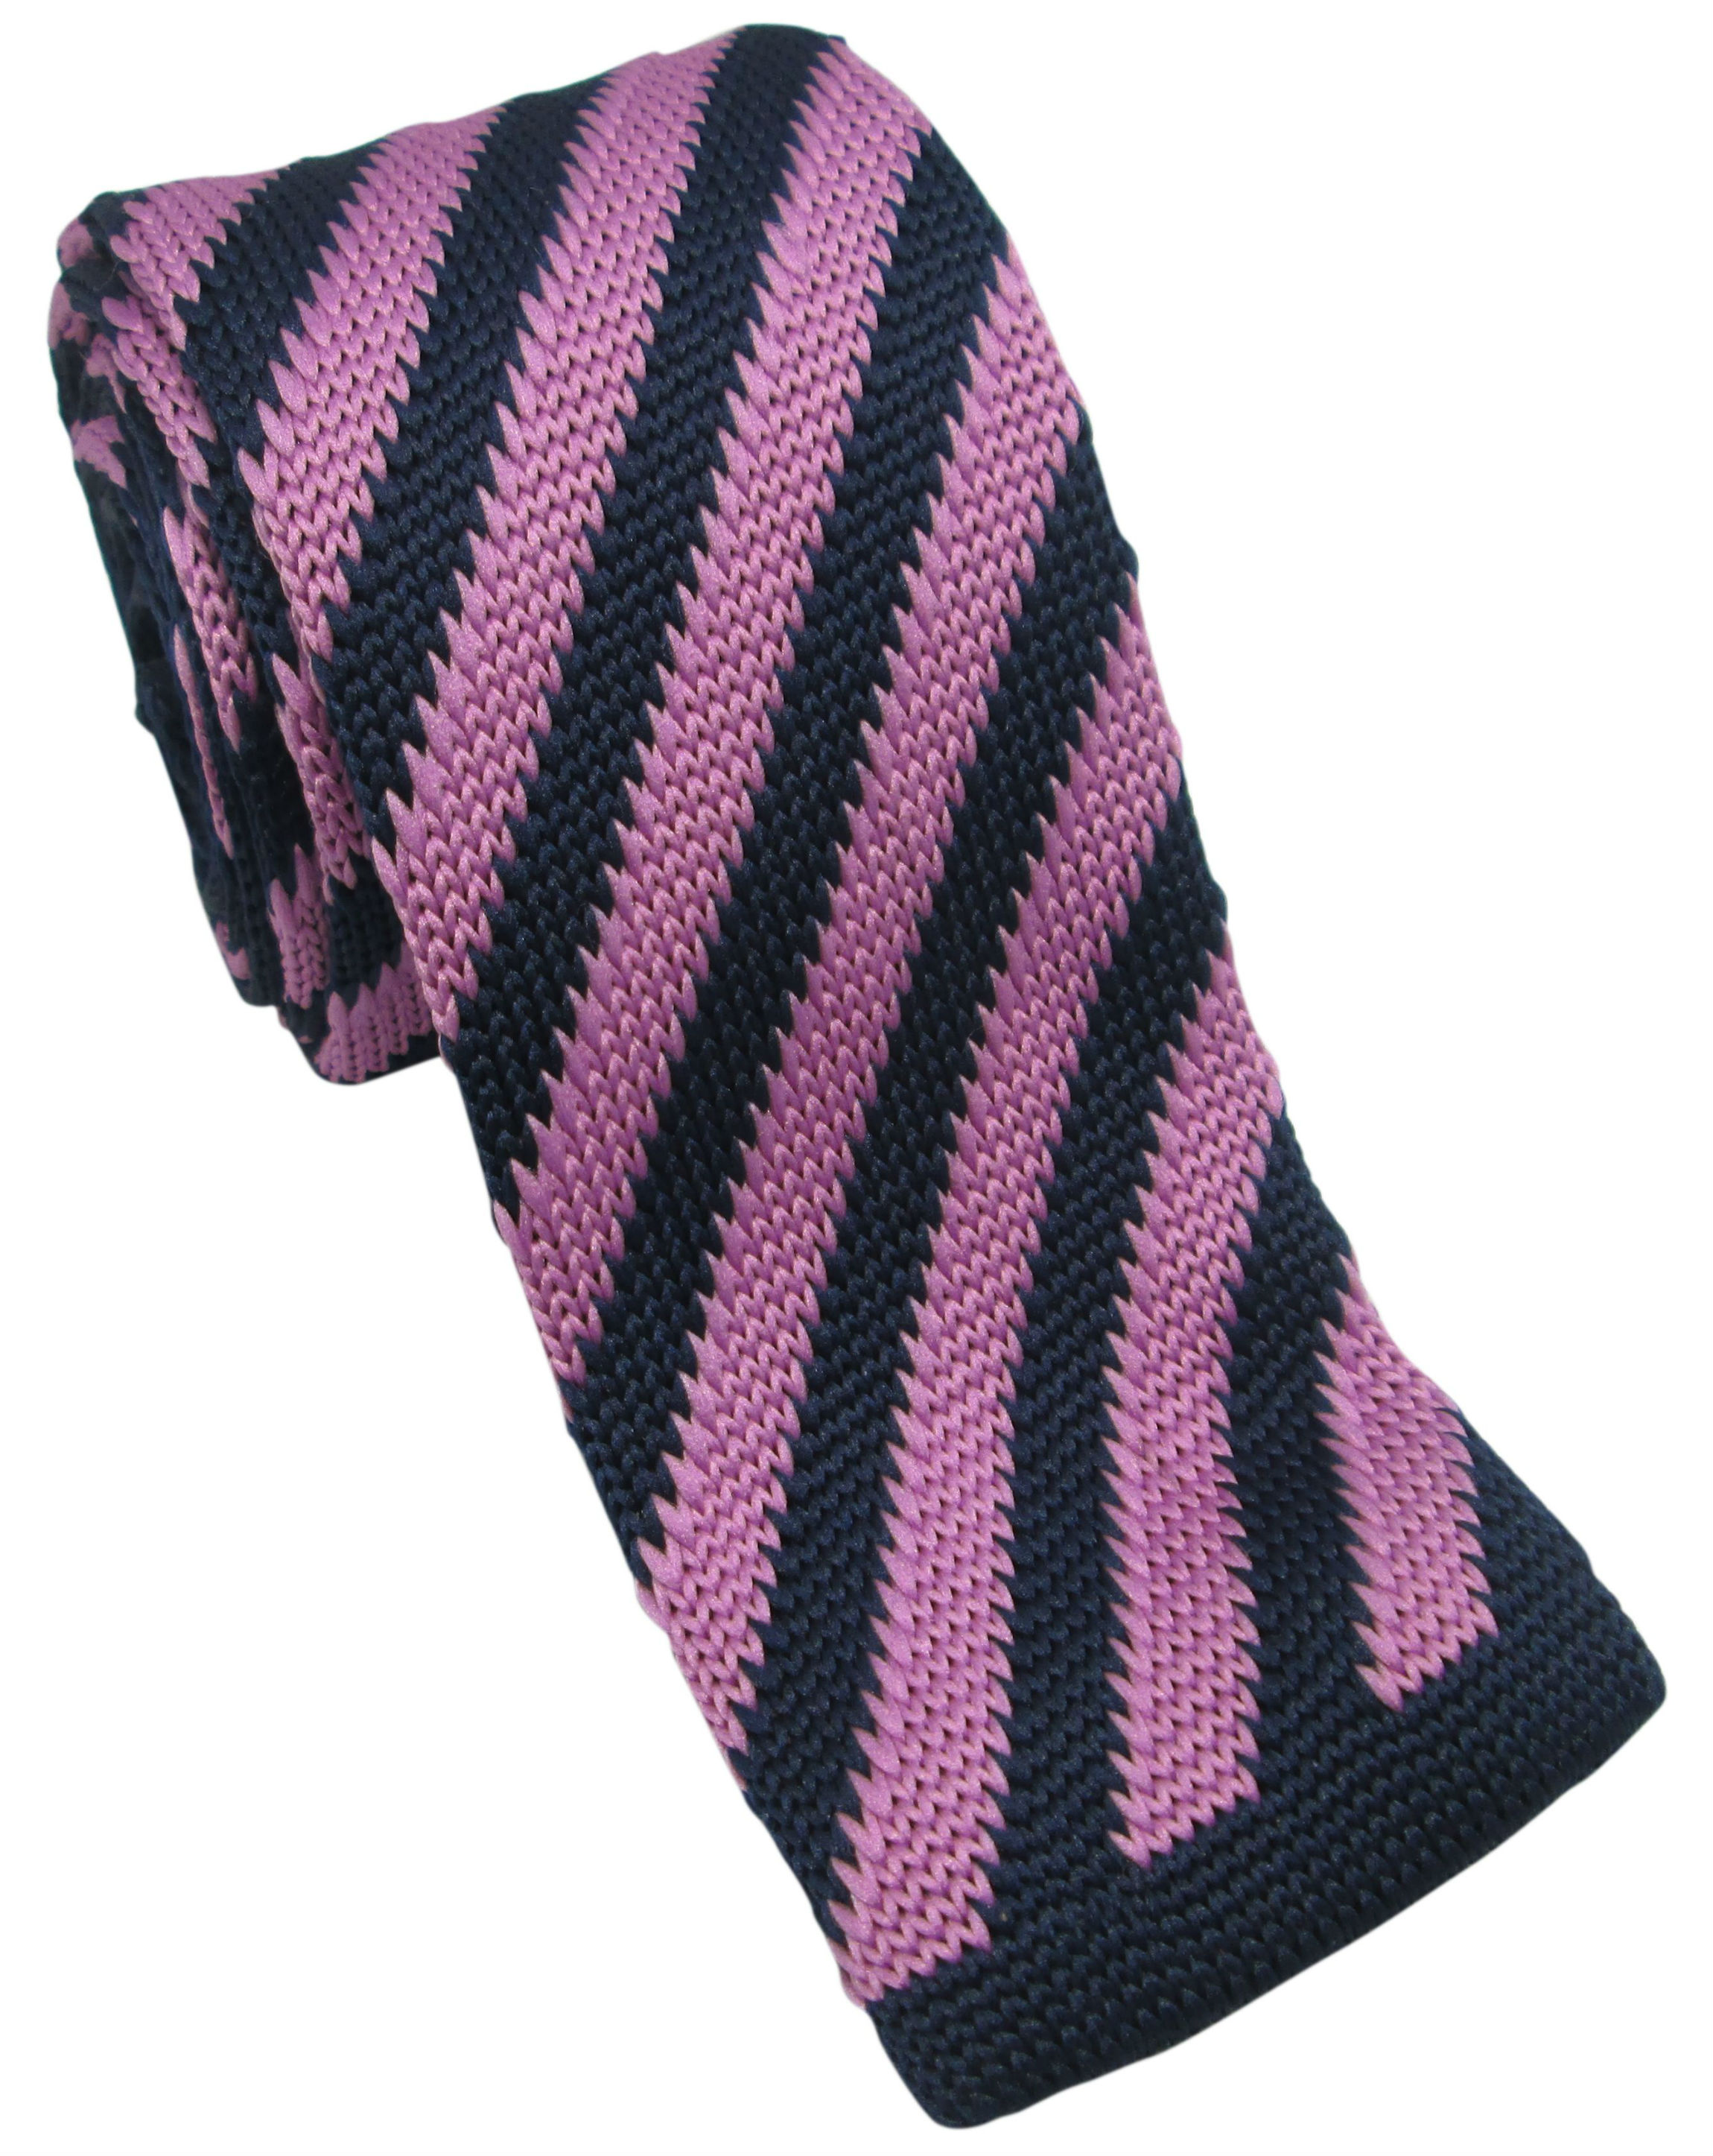 Navy and Lavender Striped Knitted Tie